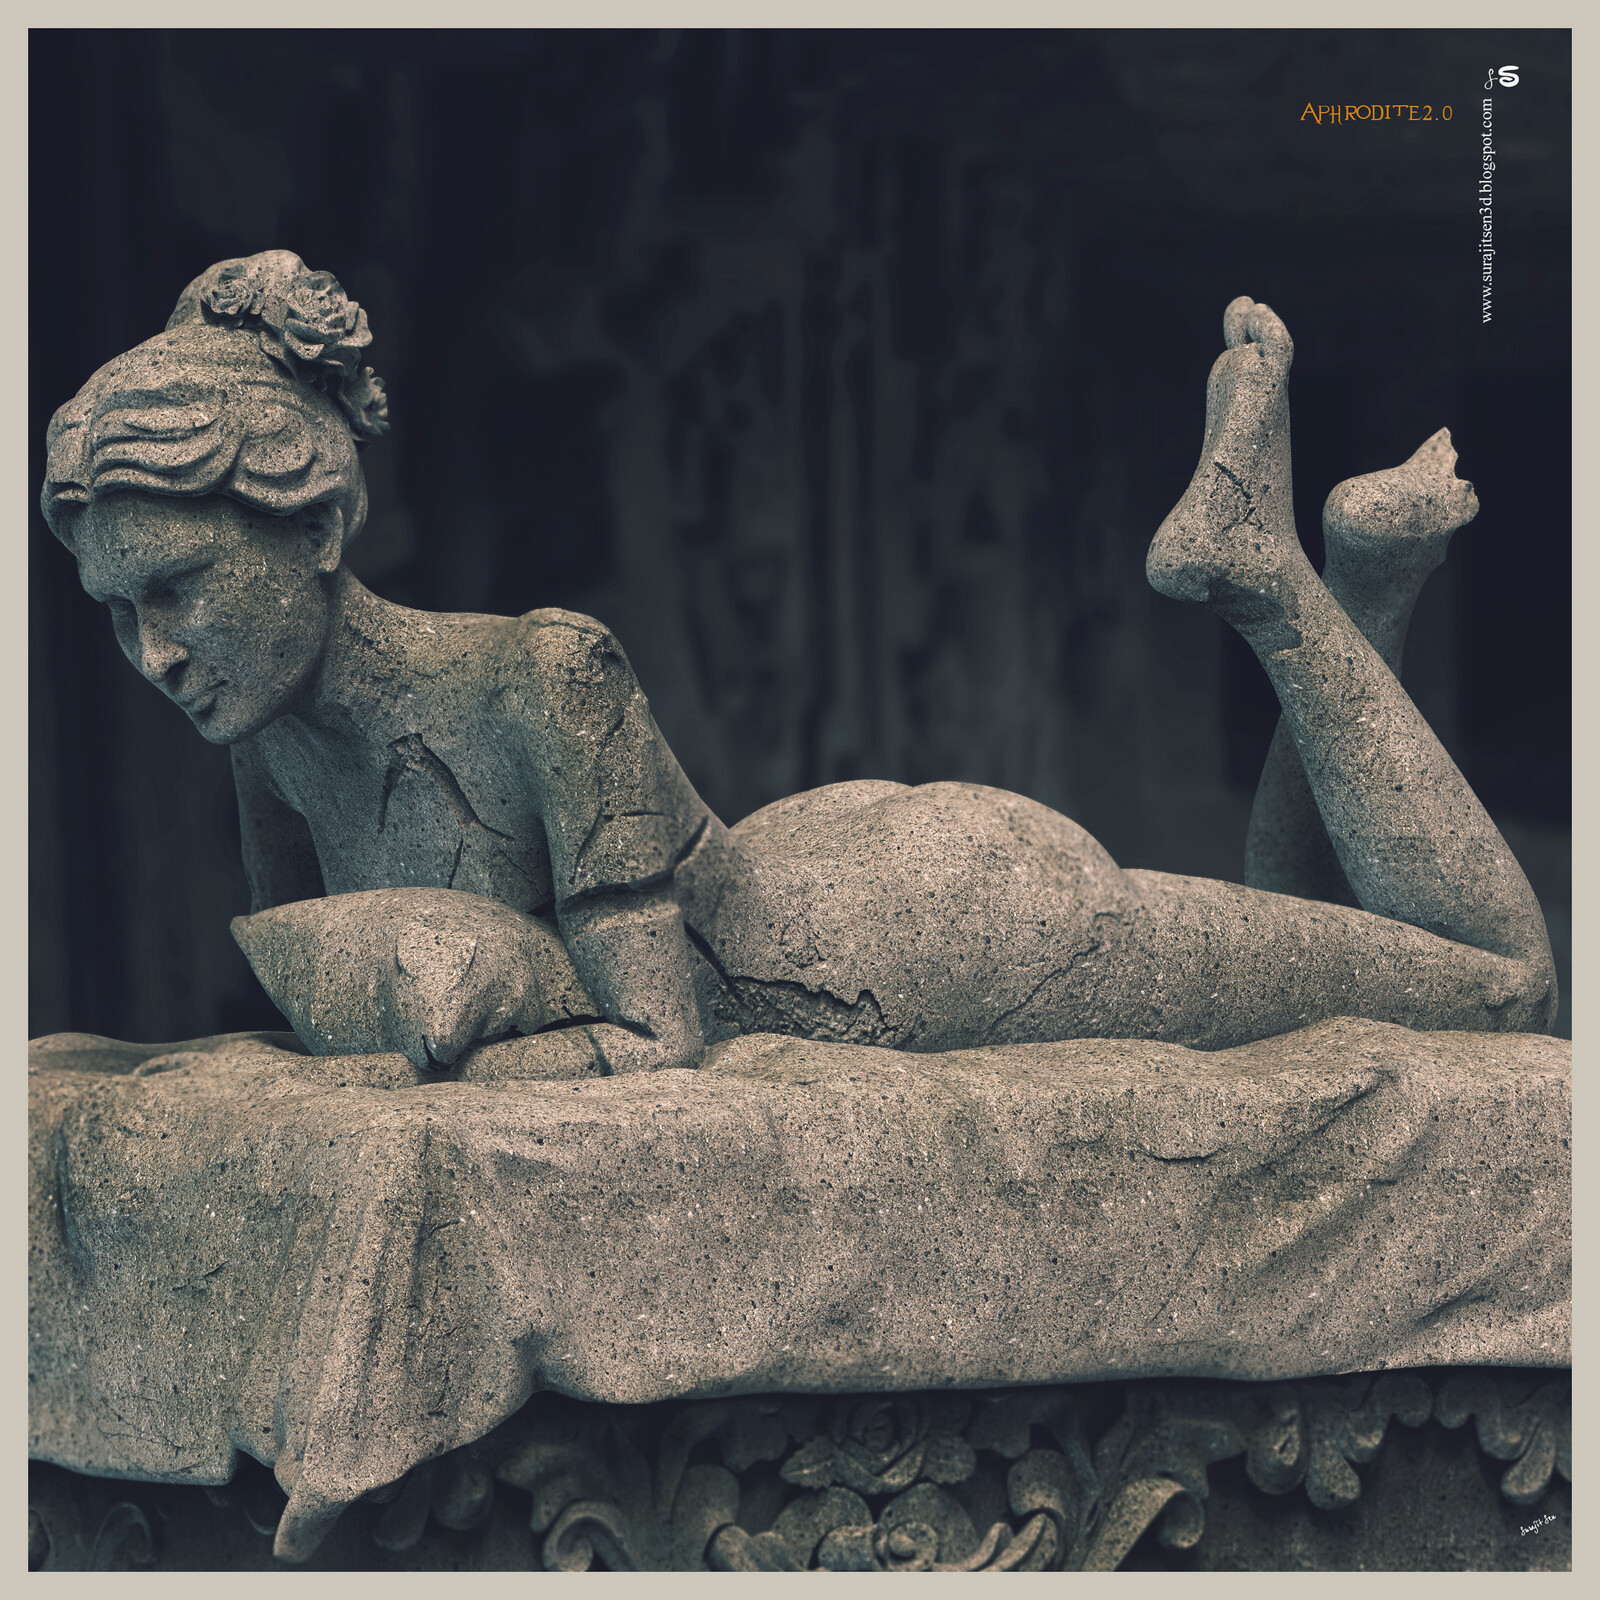 Aphrodite2.0 One of my old Sculptures.. Updated version Background music- #hanszimmermusic